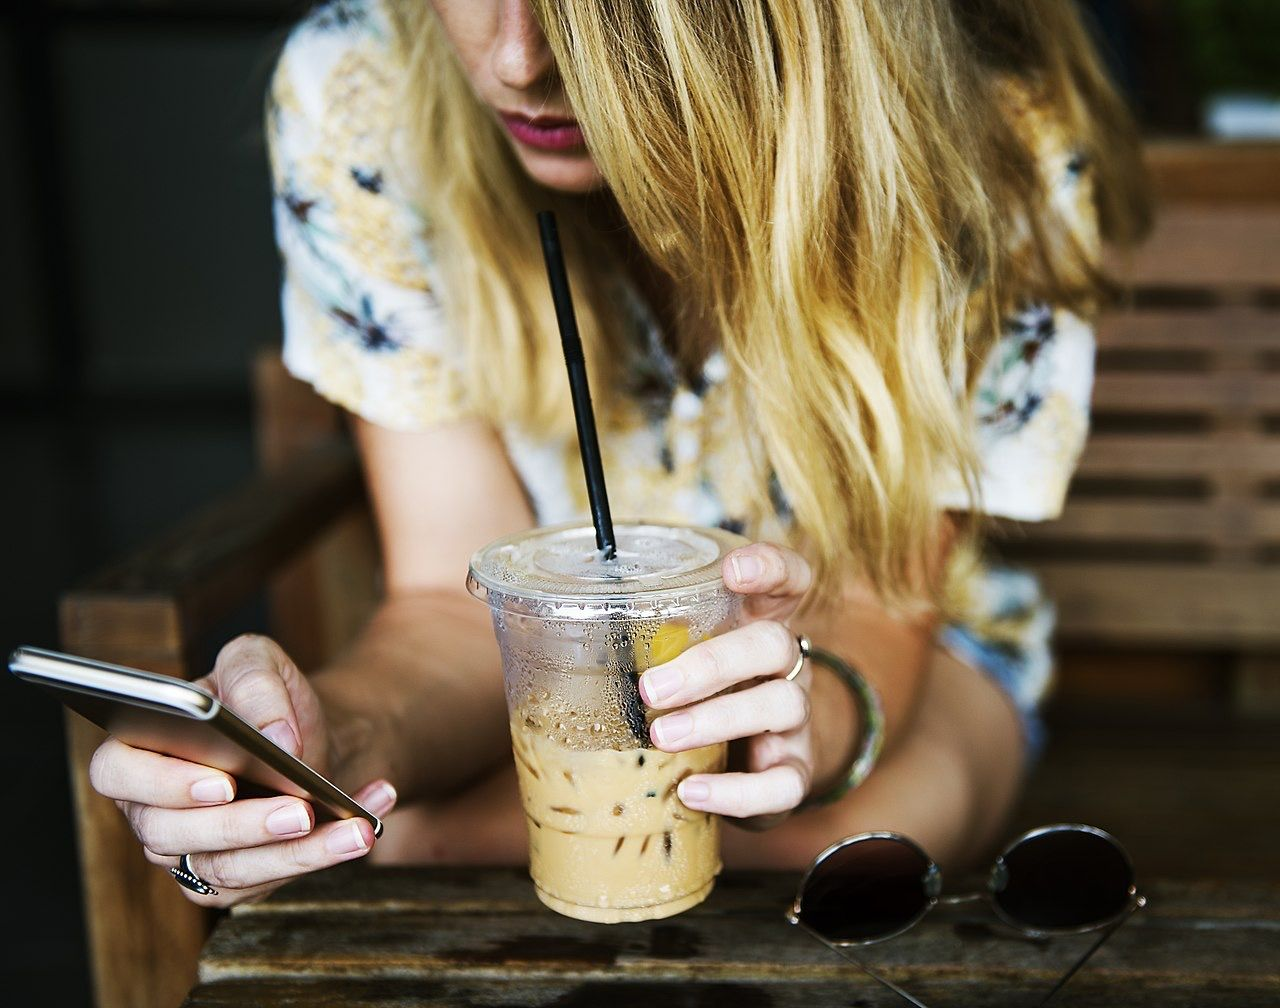 1280px-Texting_over_iced_coffee_(Unsplash)